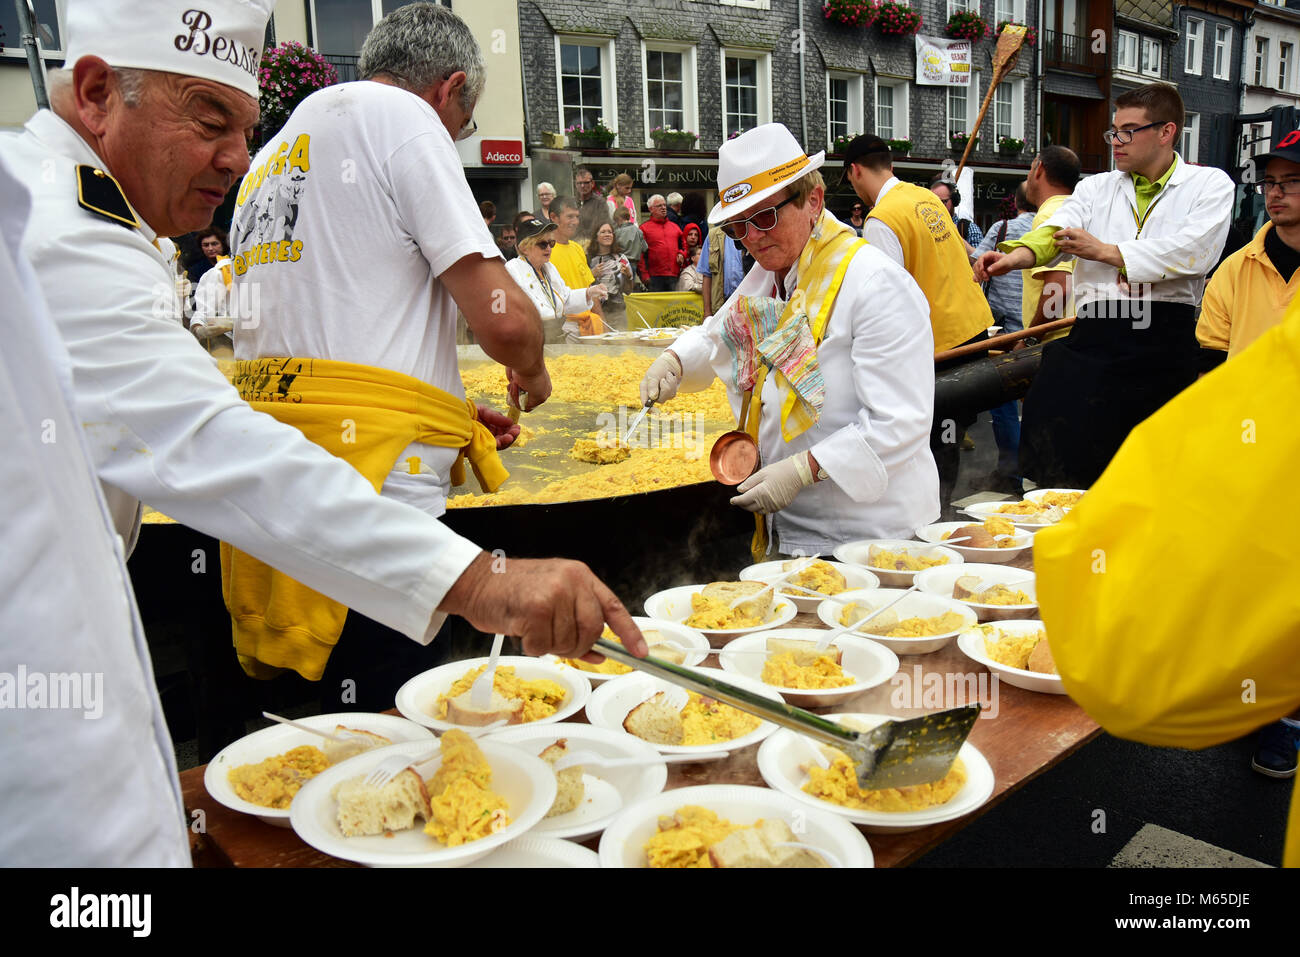 Cooking of an 10.000 egg omelette by the Confrererie Mondiale de l' Omelette Geante at Place de Rome, Malmedy Stock Photo